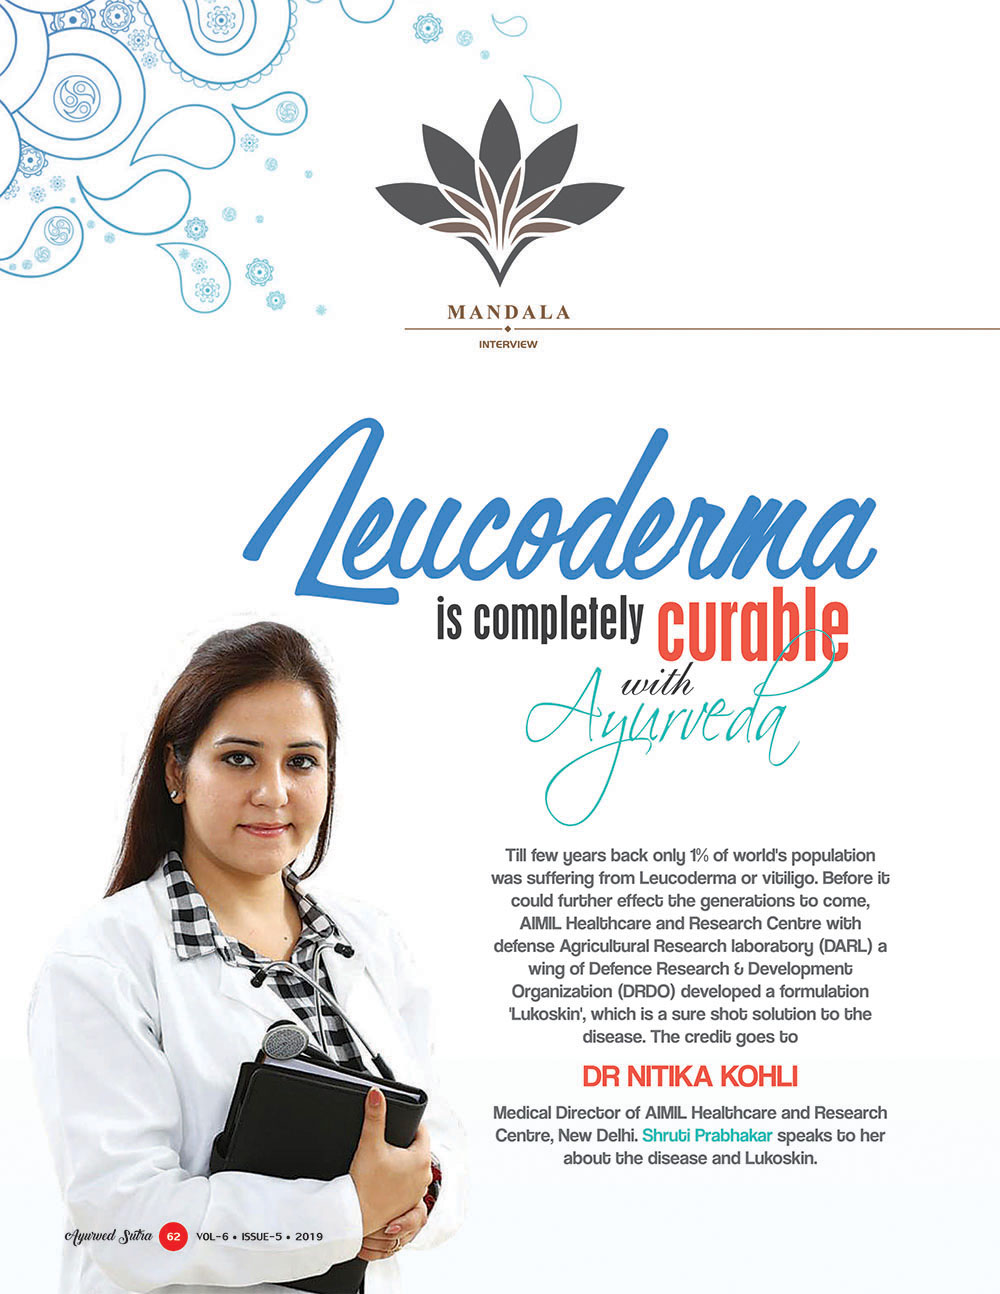 Ayurvedsutra Vol 06 issue 05 64 - Leucoderma is completely curable with Ayurveda